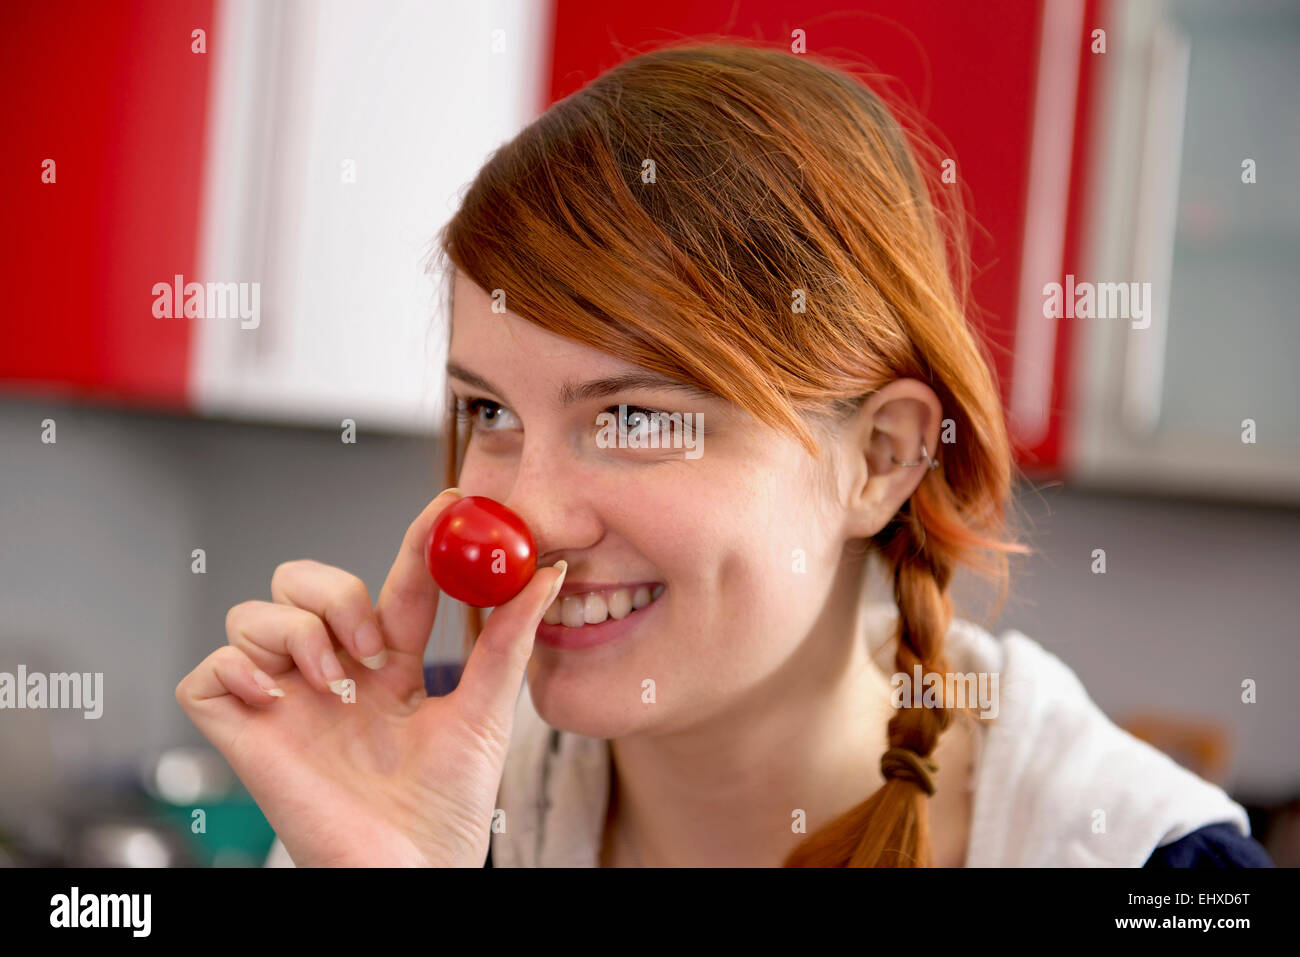 Young woman wearing clown nose, Munich, Bavaria, Germany - Stock Image